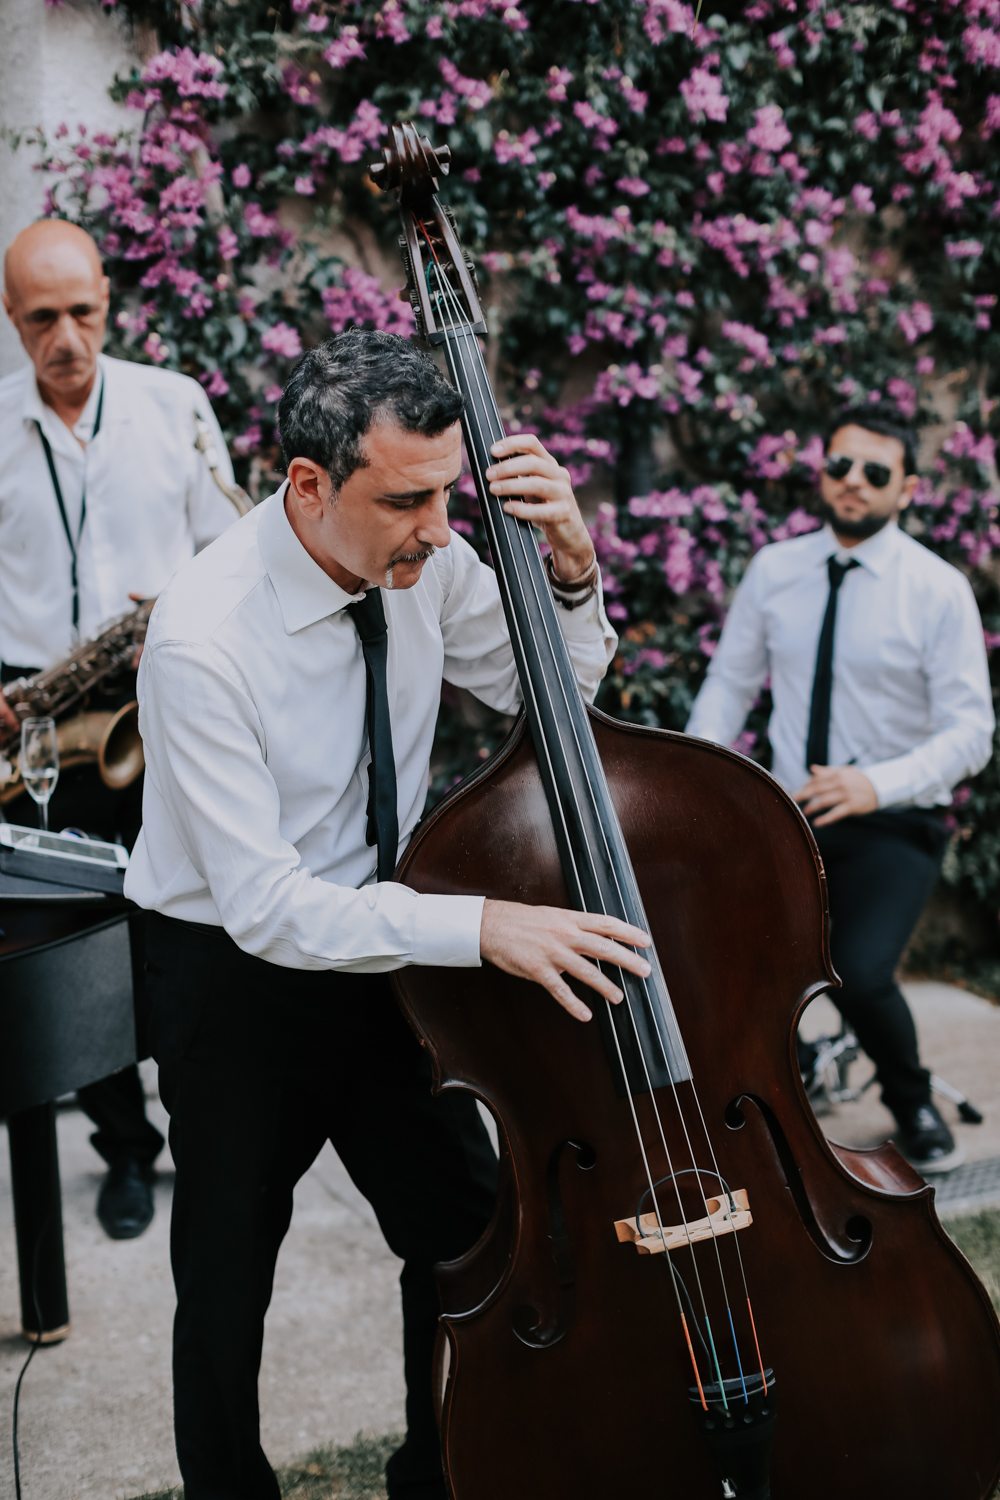 https://www.weddingamalfi.com/wp-content/uploads/Alessandro-and-Diego-wedding-music-solution.jpg